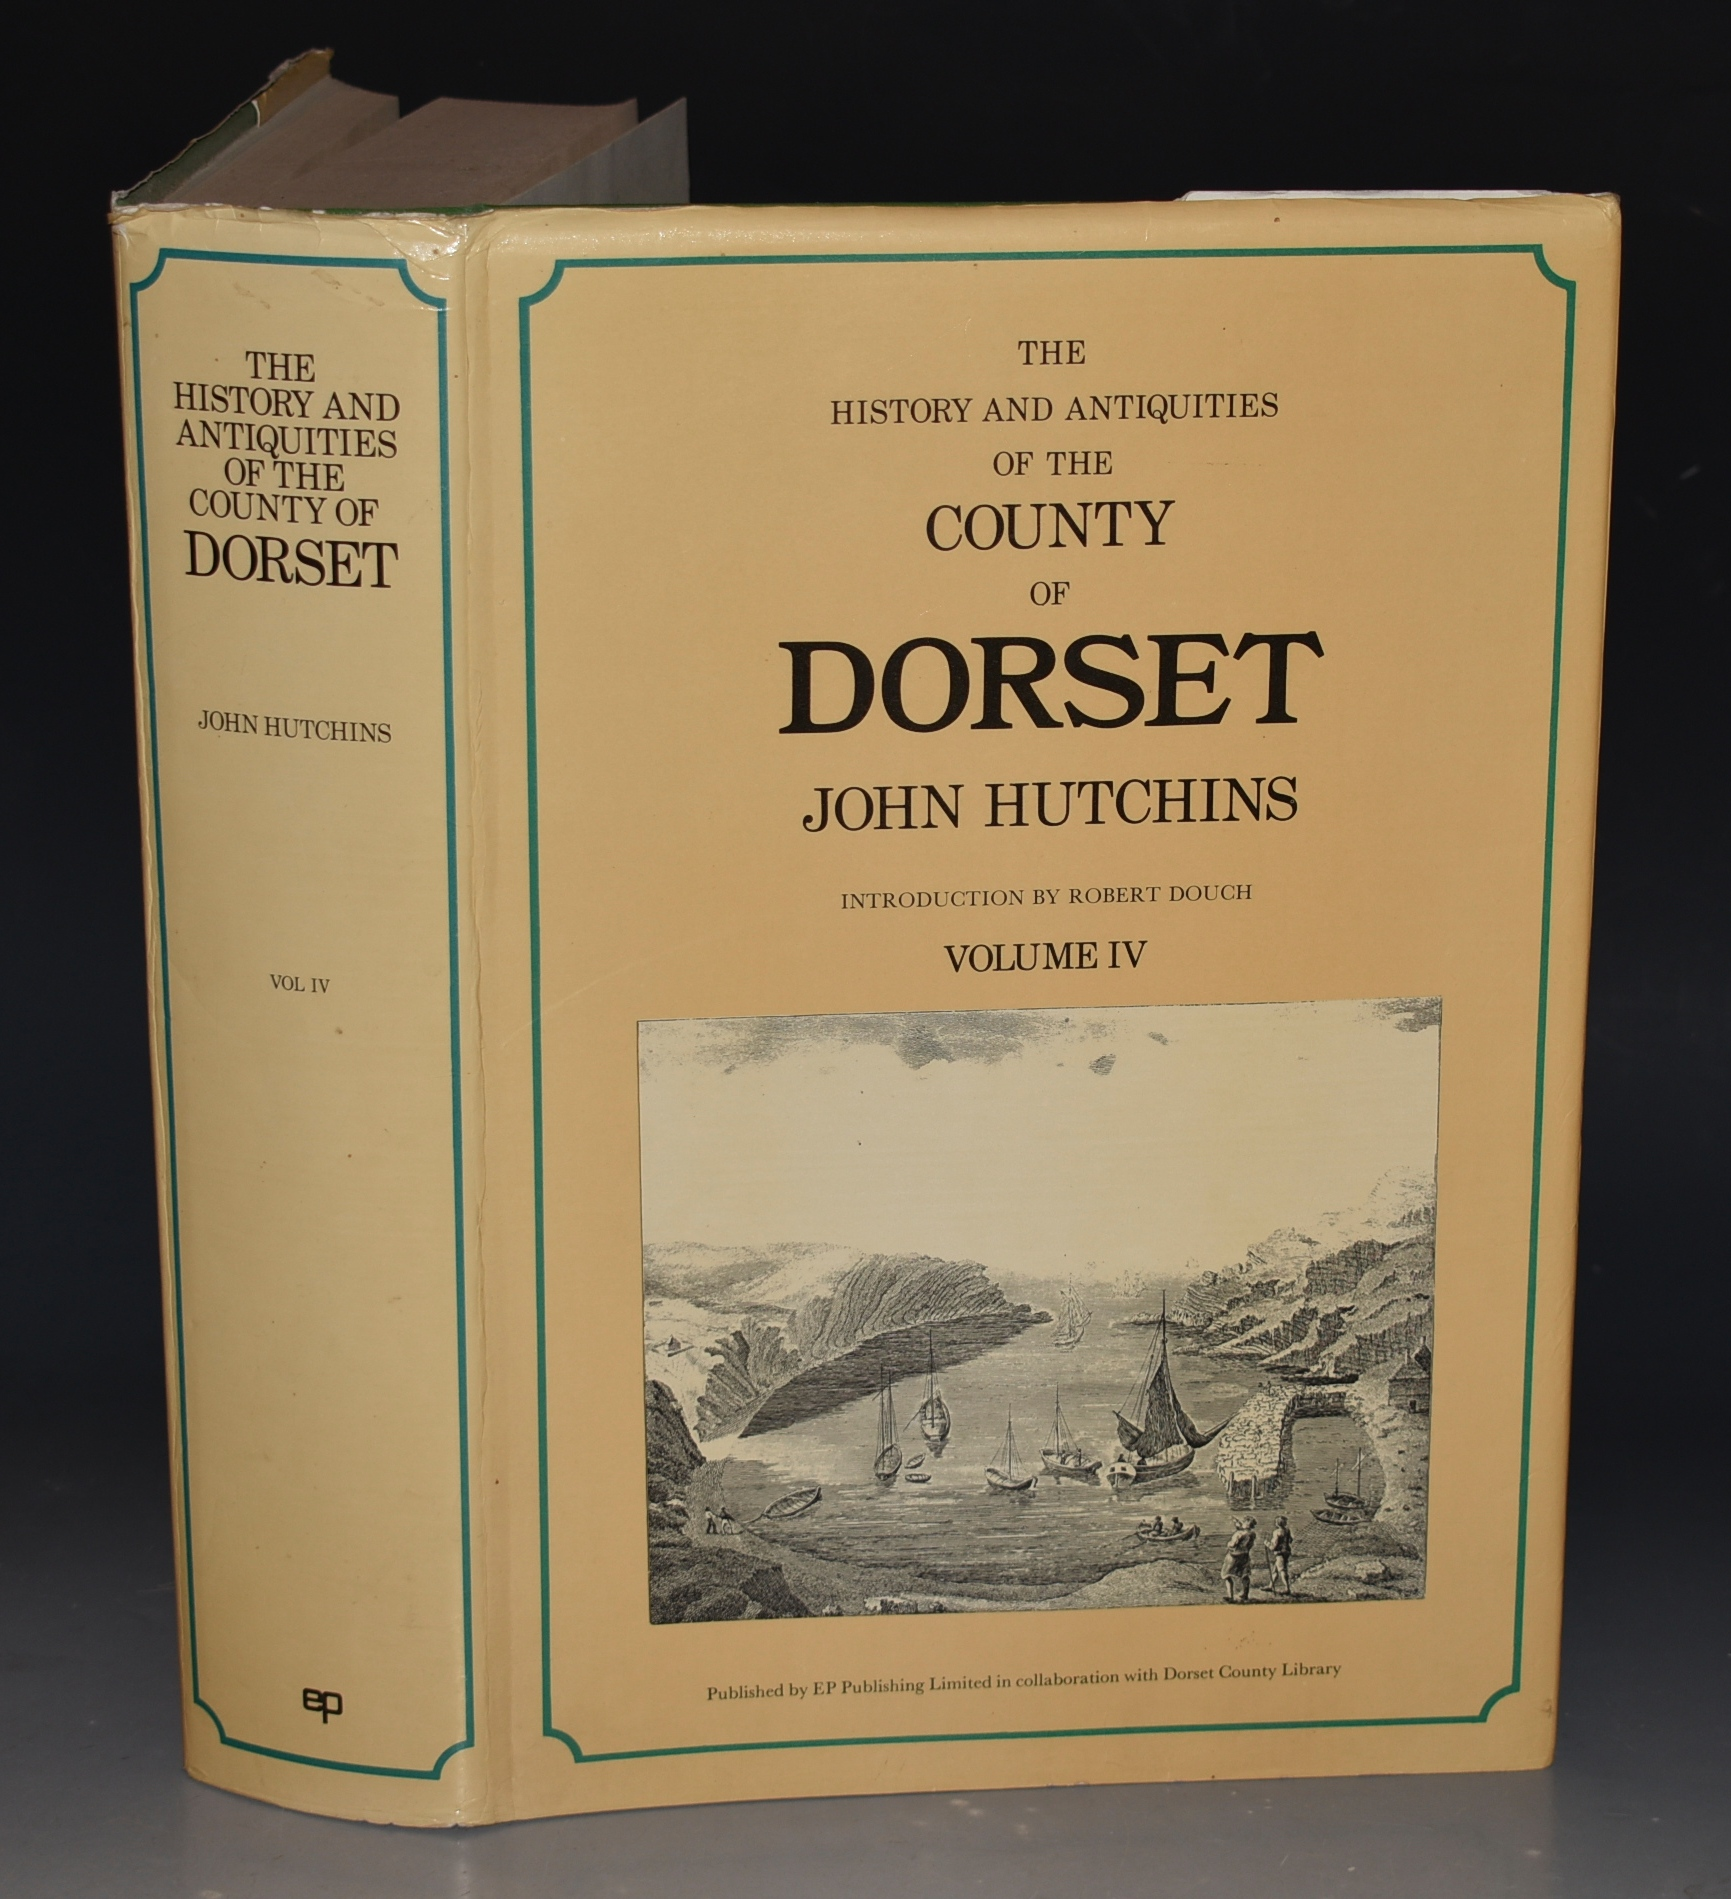 Image for History and Antiquities of the County of Dorsetshire. Volume IV. compiled from the best and most ancient historians, inquisitiones post mortem, and other valuable records and MSS. in the public offices and libraries and in private hands. With a copy of Domesday Book and Inquisitio Gheldi for the County: interspersed with some remarkable particulars of natural history; views of antiquities, state of the nobility and gentry, &c. Reprint of Third Edition by W.Shipp and J.W.Hodson.